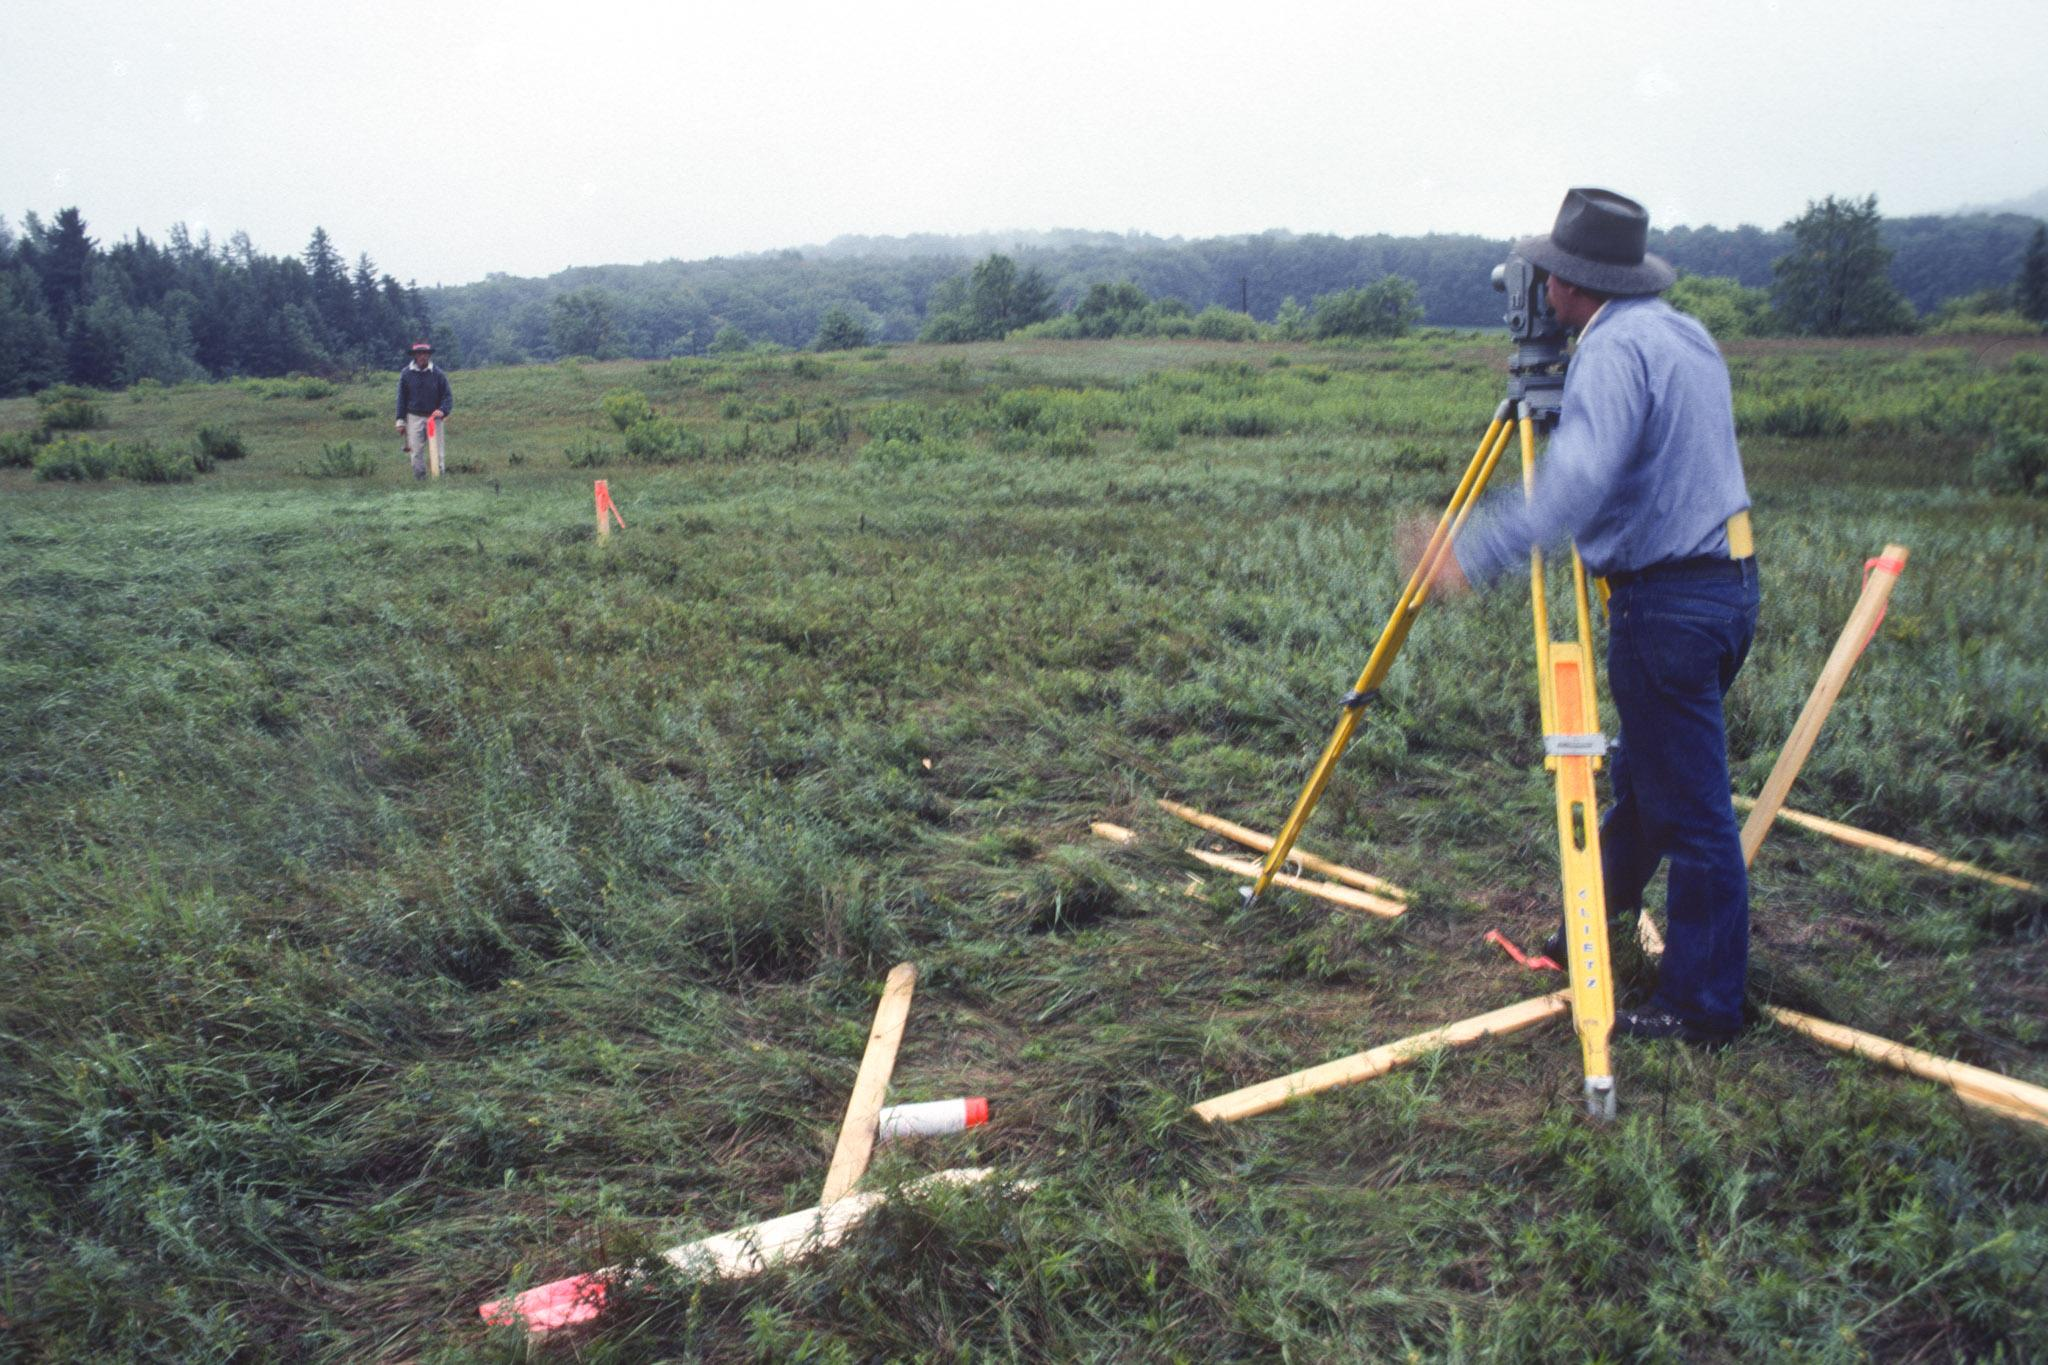 two figures stand far apart in a green field, looking through surveying equipment